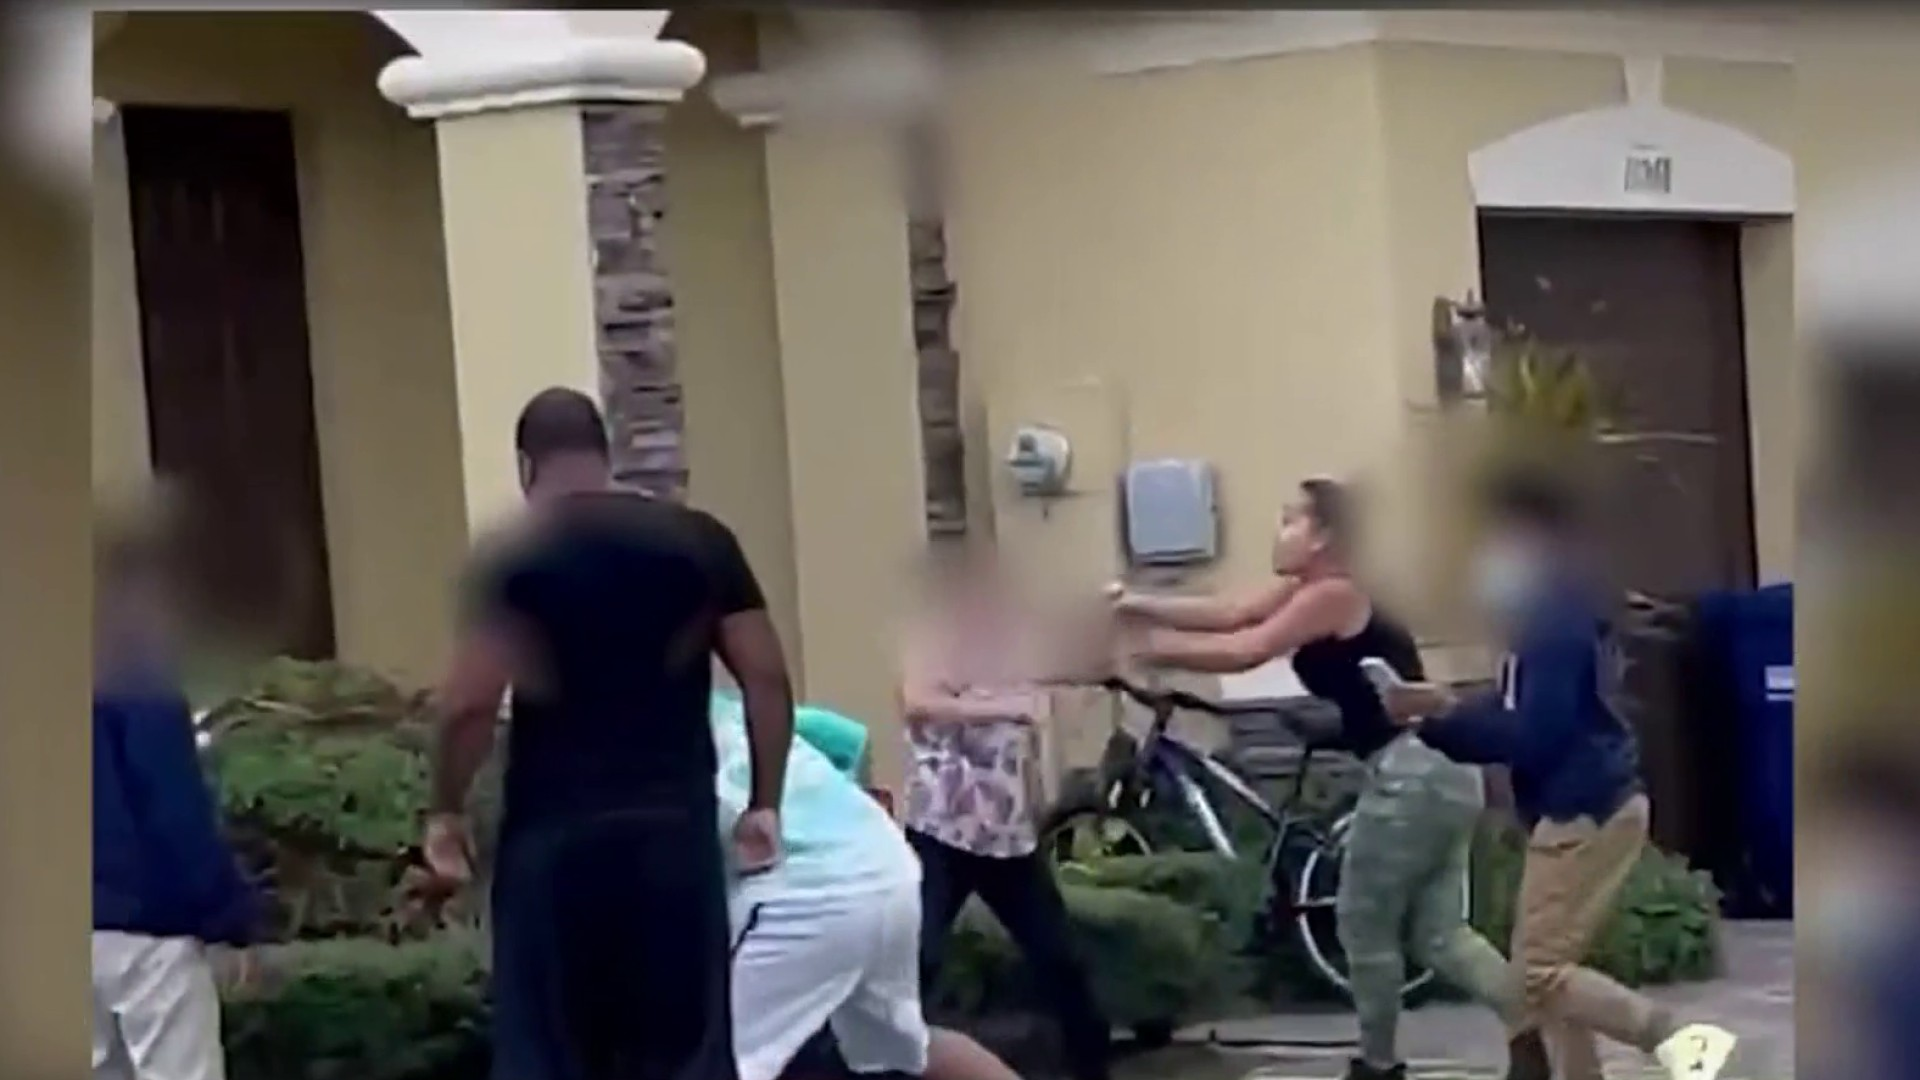 Parents Arrested After Fight Caught on Camera in Doral Neighborhood